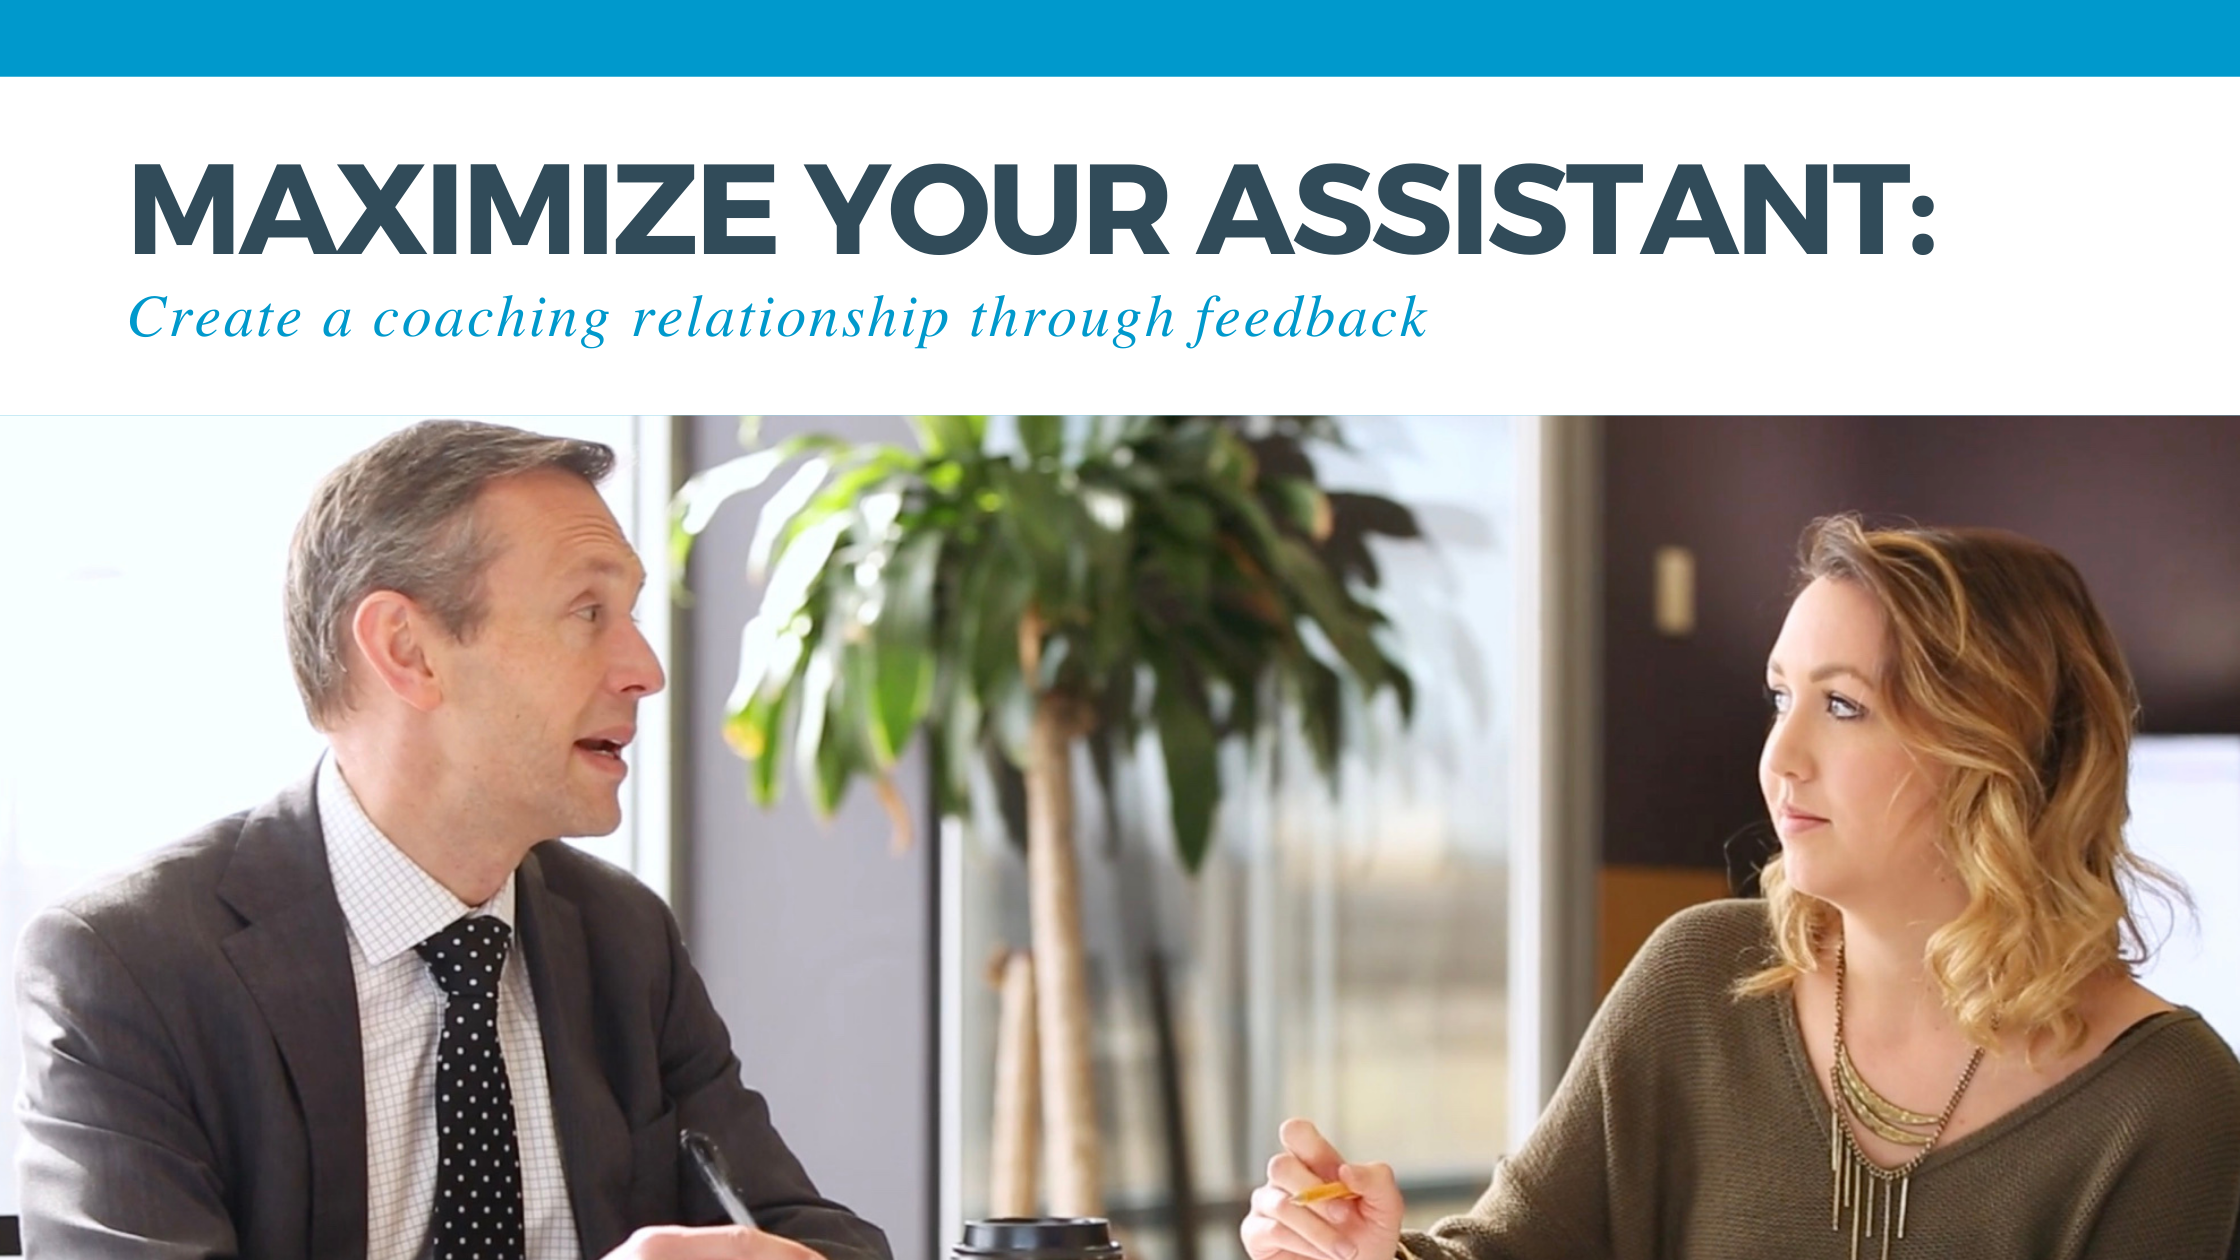 Maximize Your Assistant: Create a coaching relationship through feedback